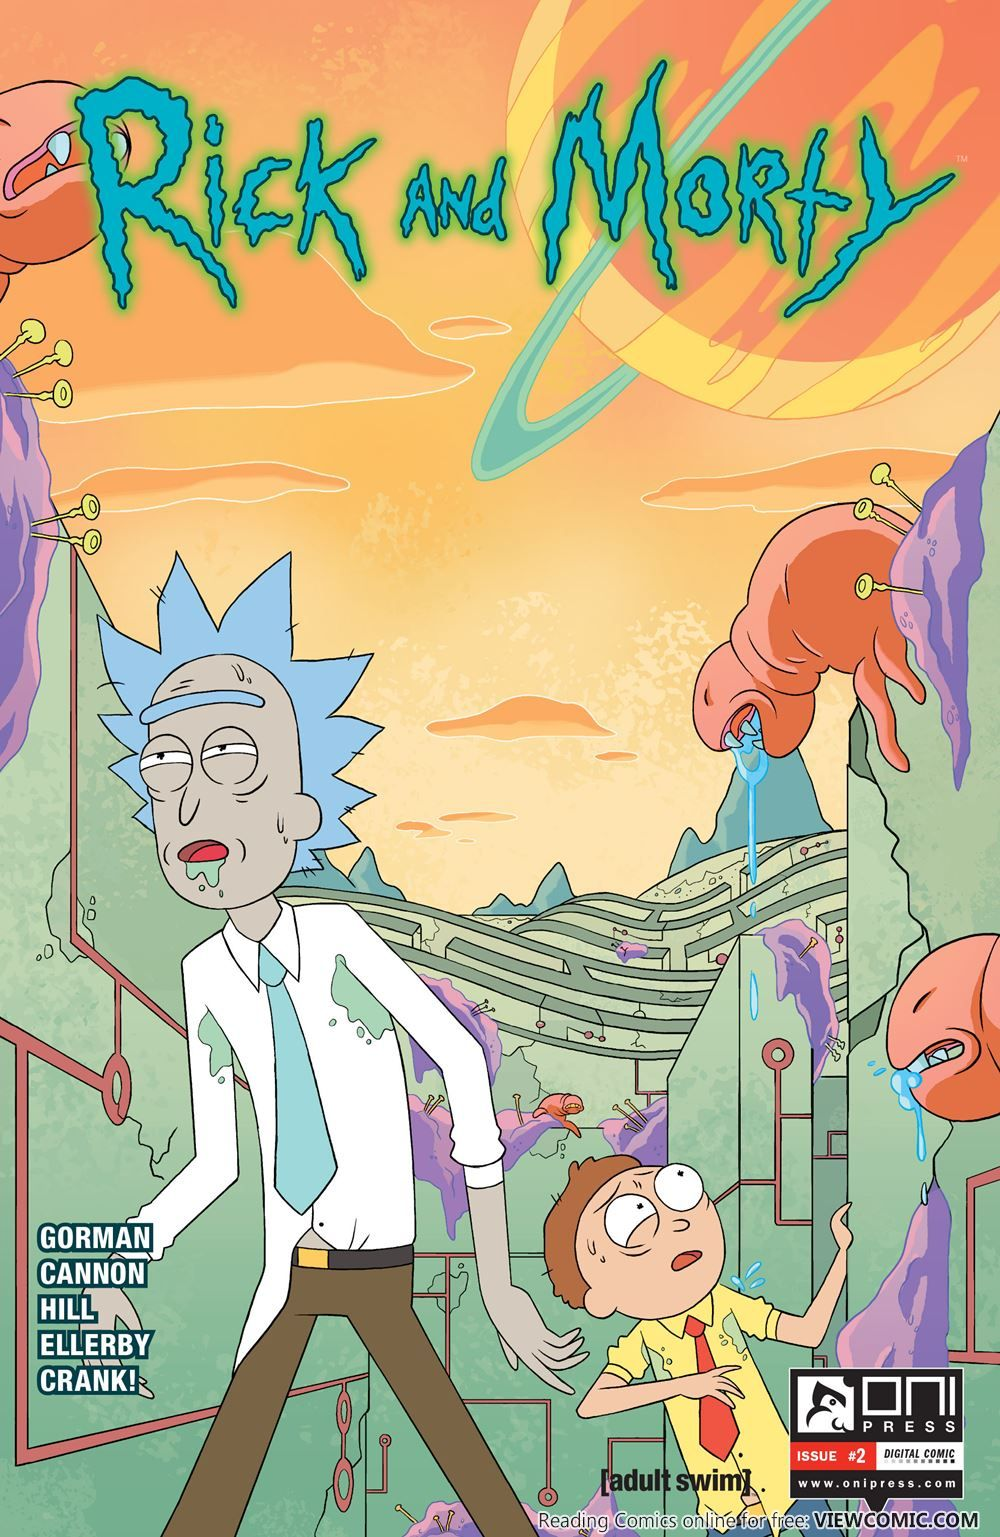 Rick And Morty 002 2015 Viewcomic Reading Comics Online For Free 2018 Rick And Morty Comic Rick And Morty Poster Rick And Morty